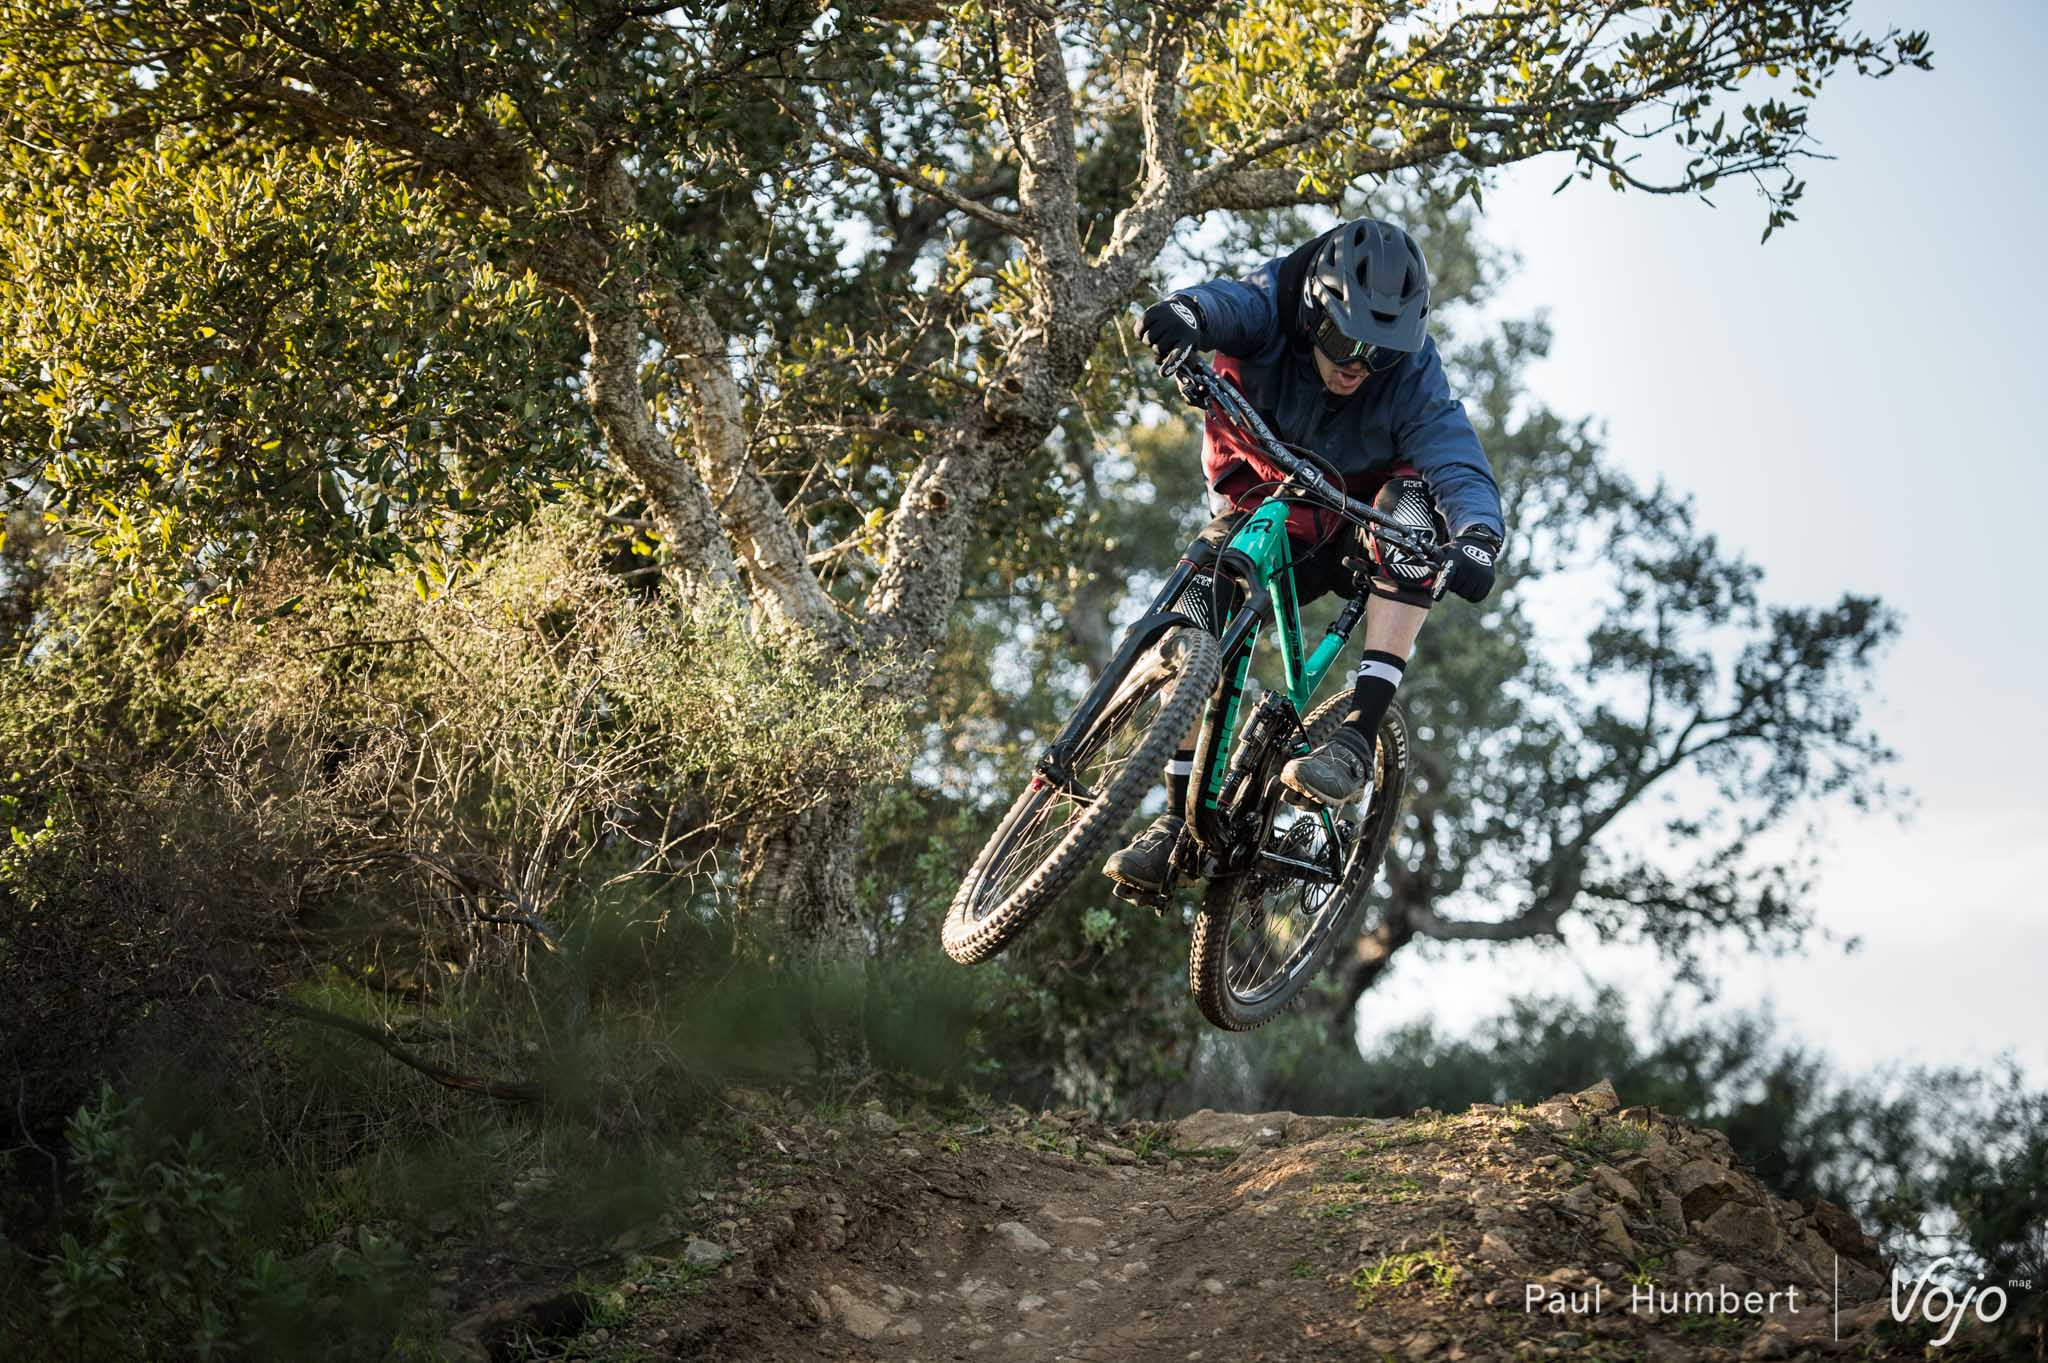 azur-bike-park-2017-vojo-paul-humbert-13